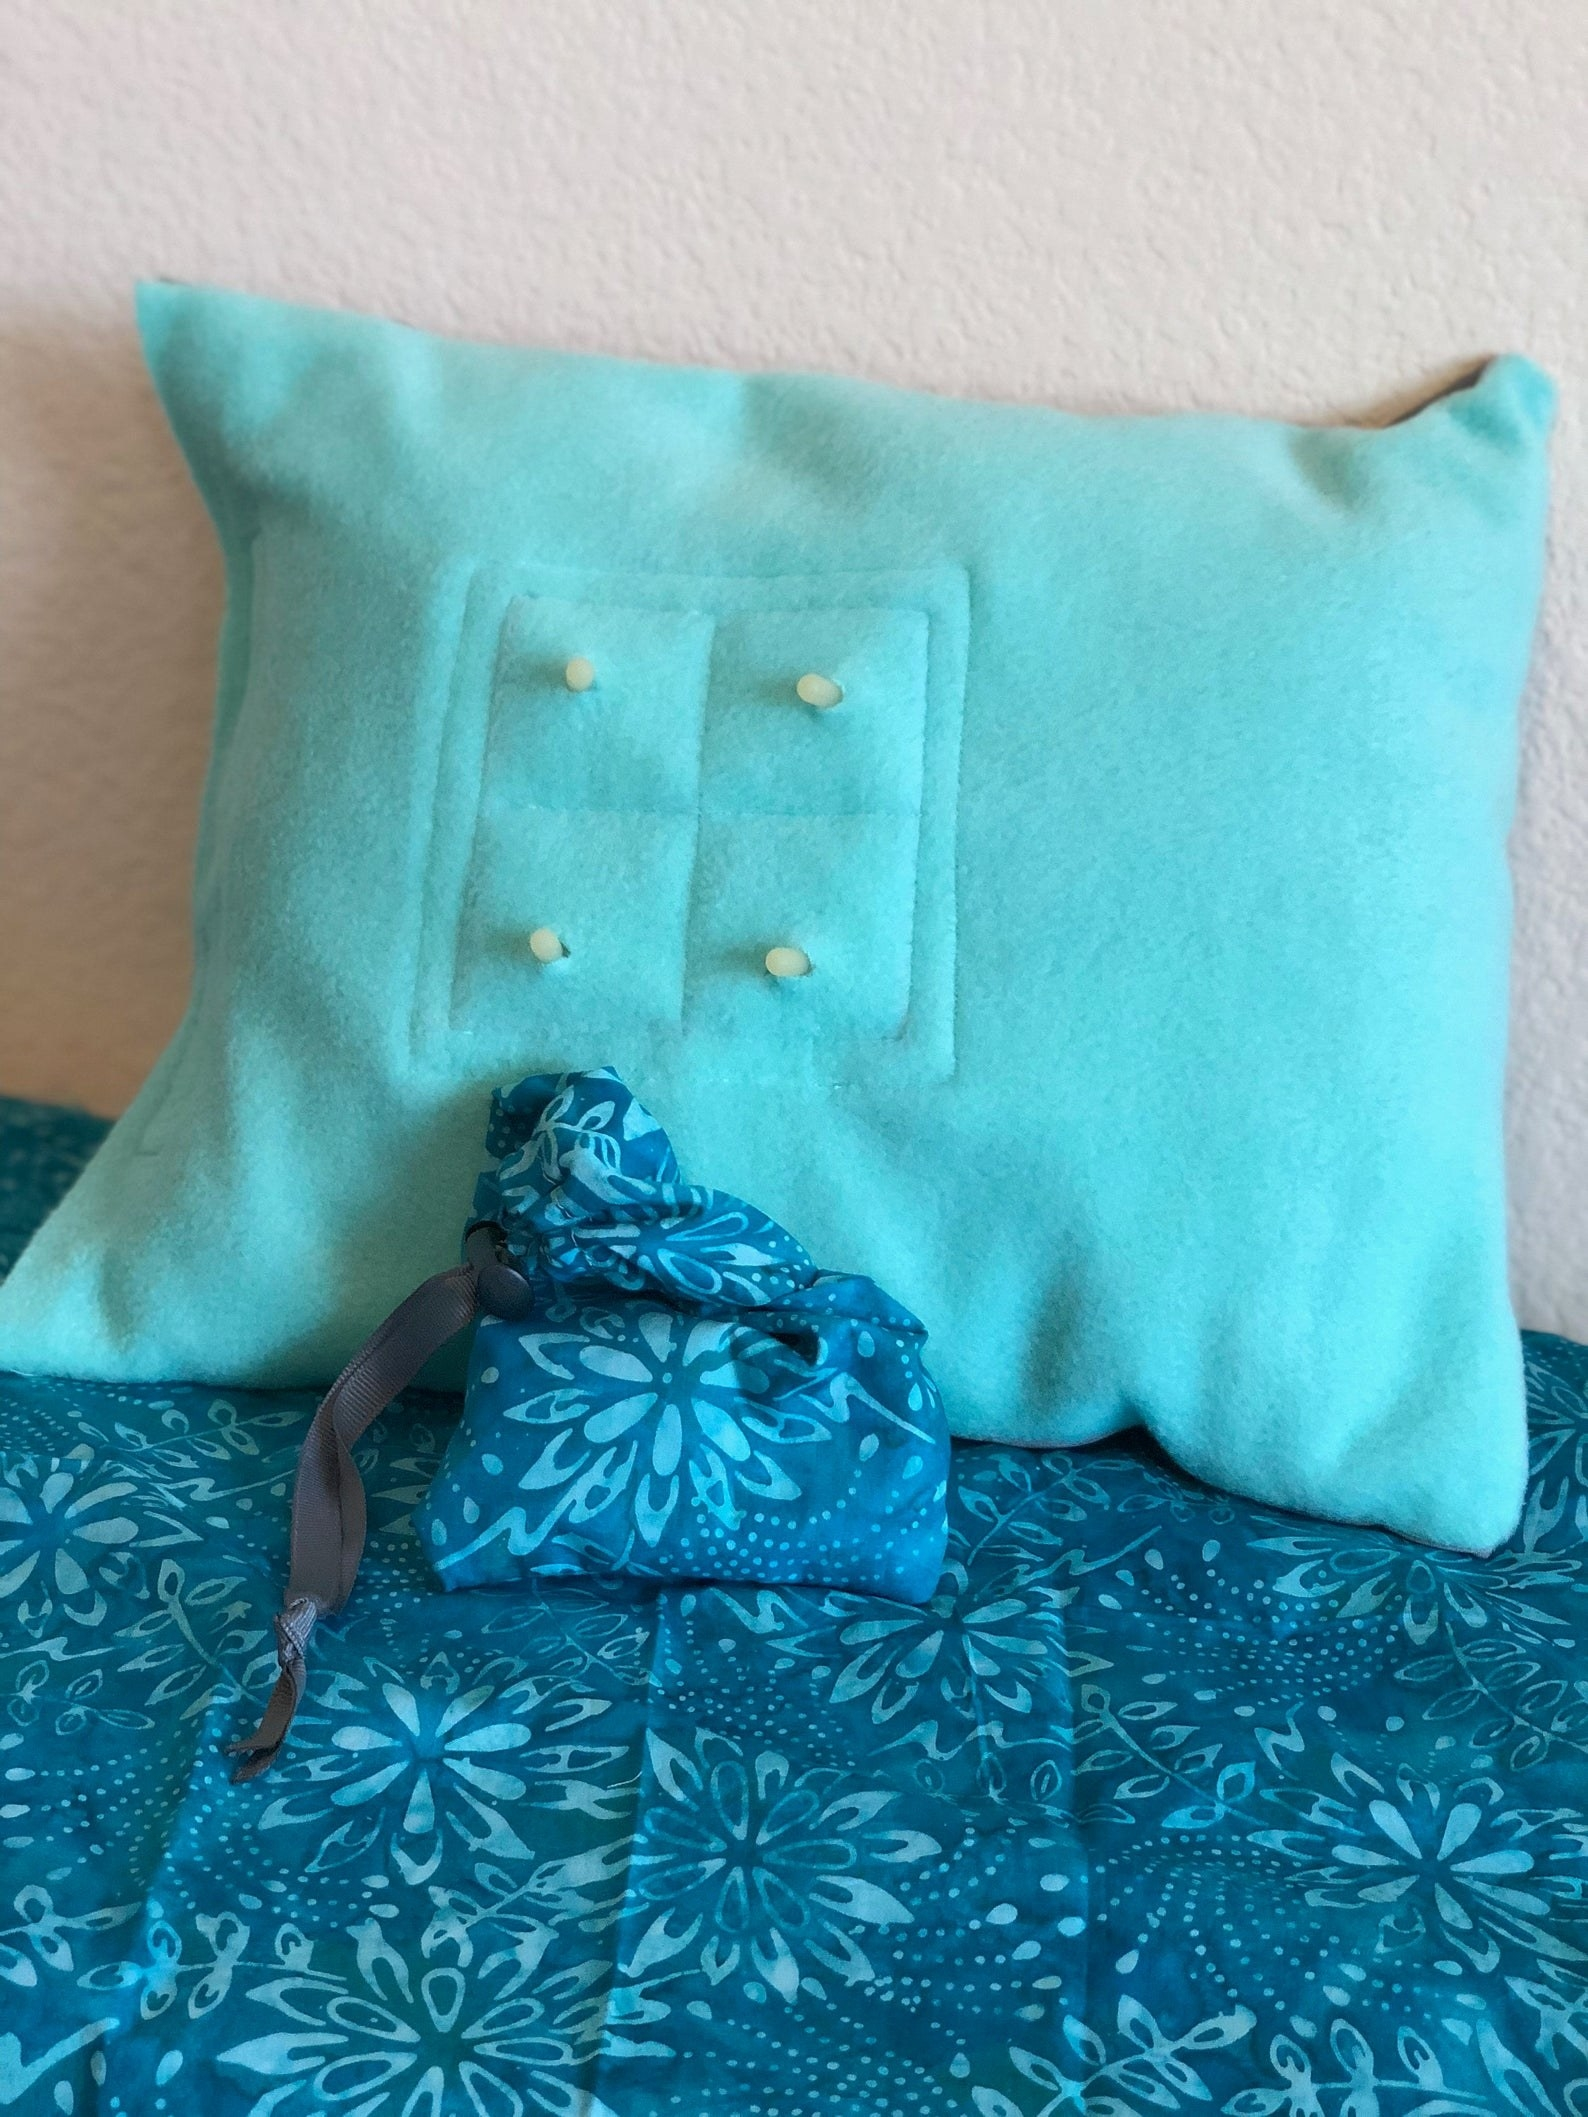 The pillow in the color teal